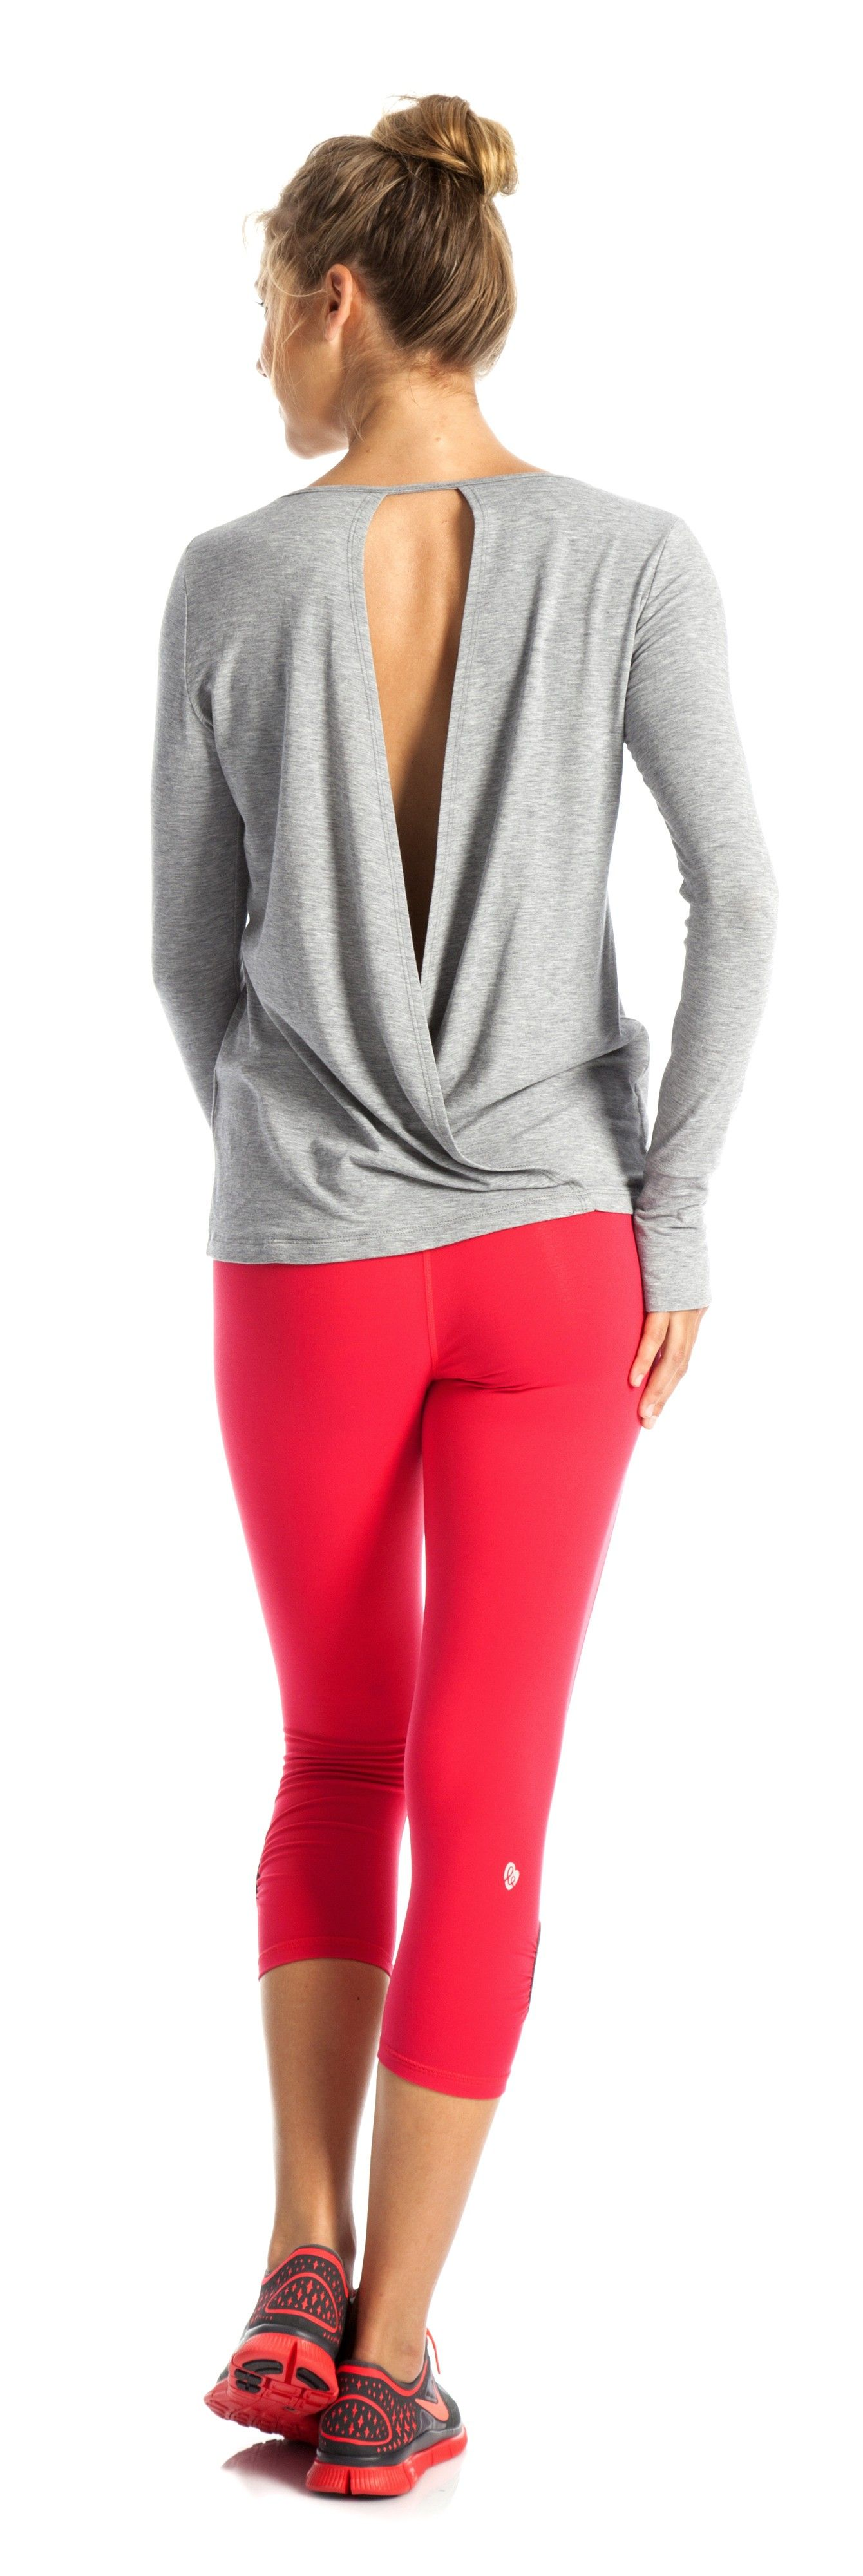 cute workout clothes for women  yoga tops  yoga pants